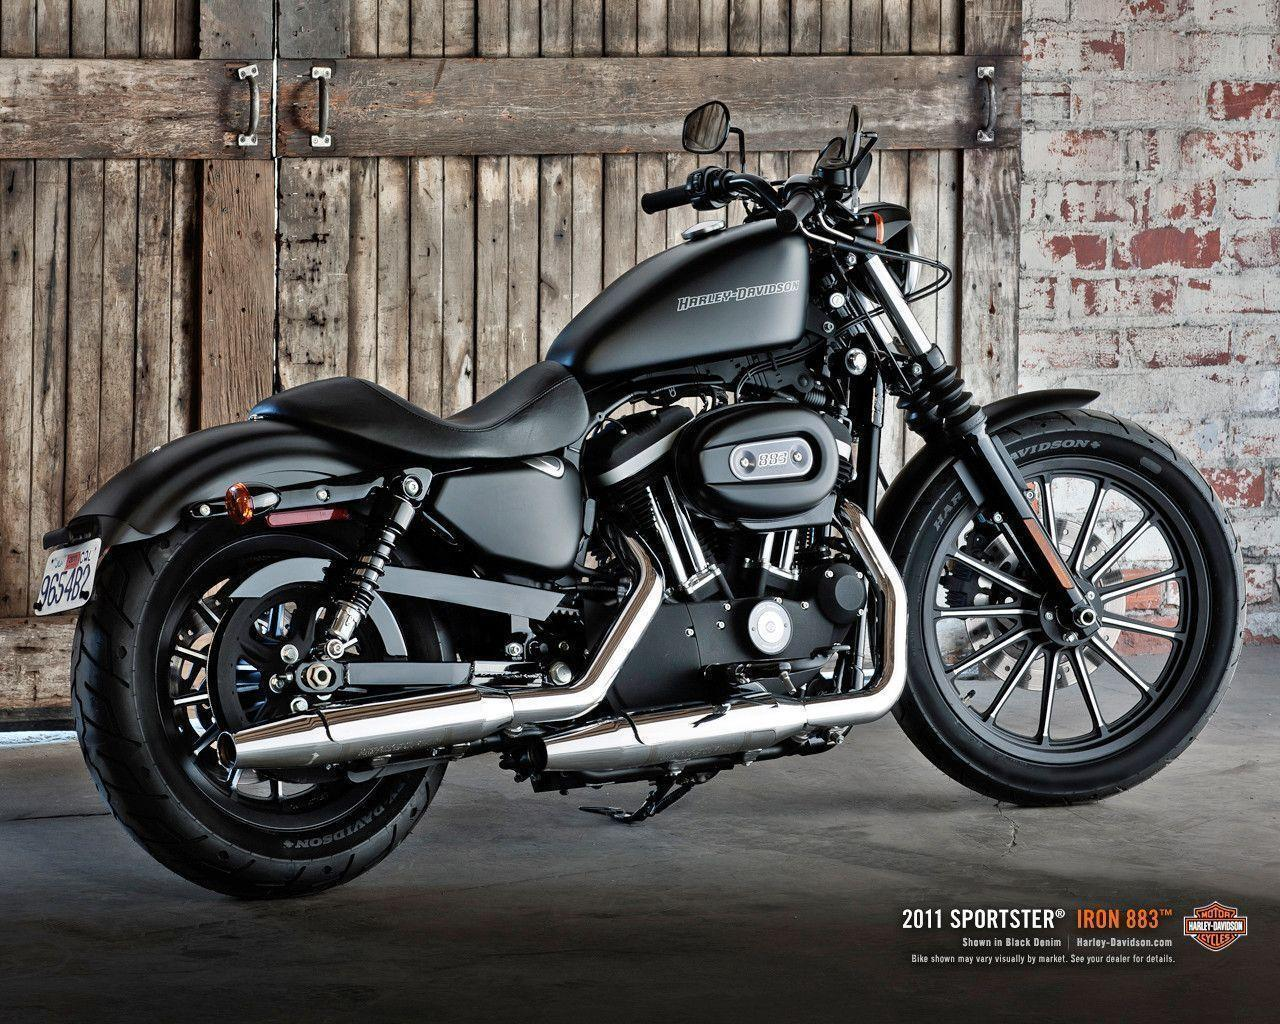 wallpapers 2015 harley davidson iron 883 wallpaper cave. Black Bedroom Furniture Sets. Home Design Ideas